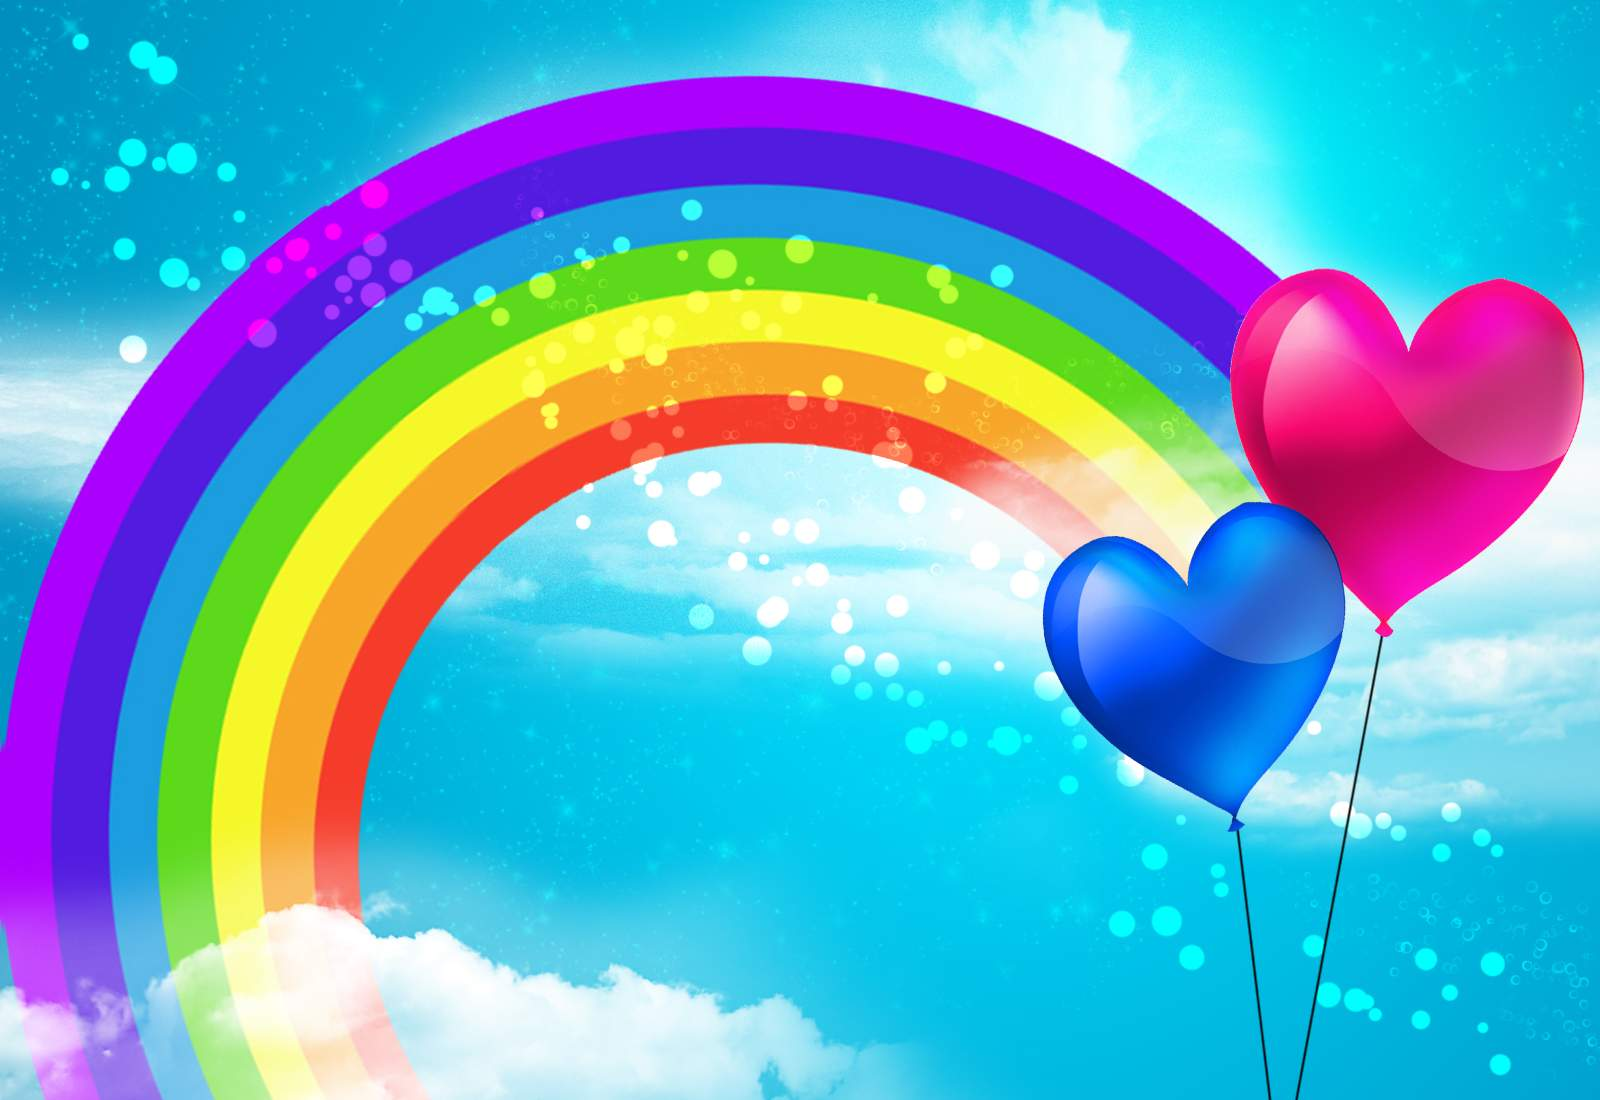 Cute Wallpaper Quotes Download Rainbow Wallpaper Baloons 7176 Wallpaper Walldiskpaper